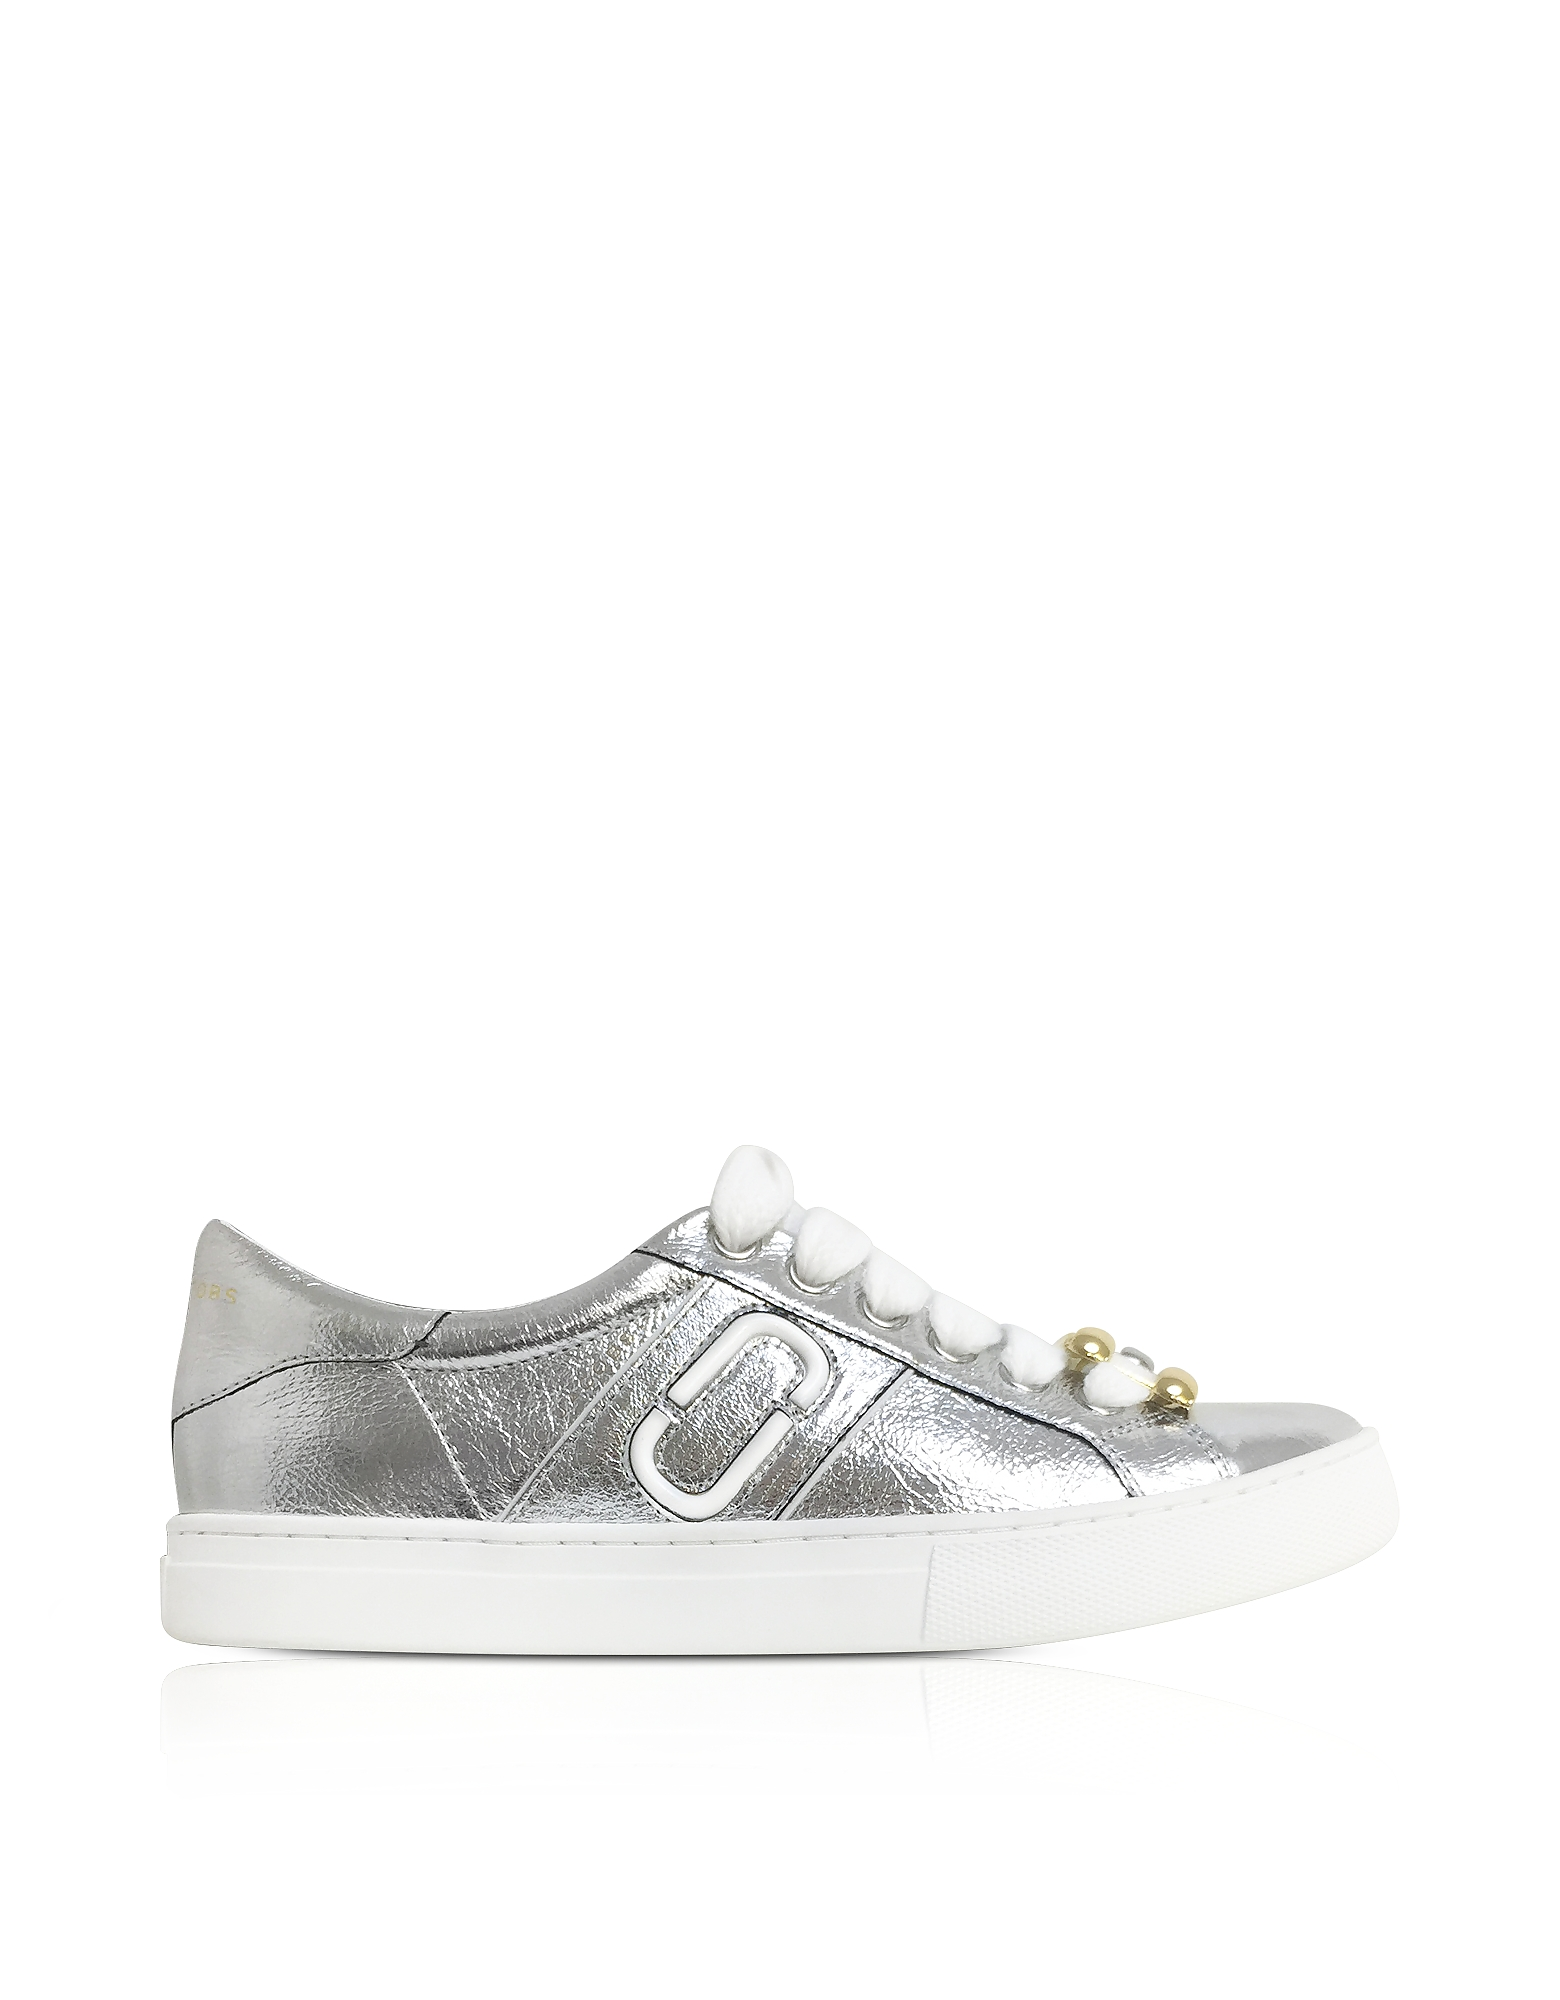 Marc Jacobs Shoes, Silver Leather Empire Chain Link Low Top Sneakers